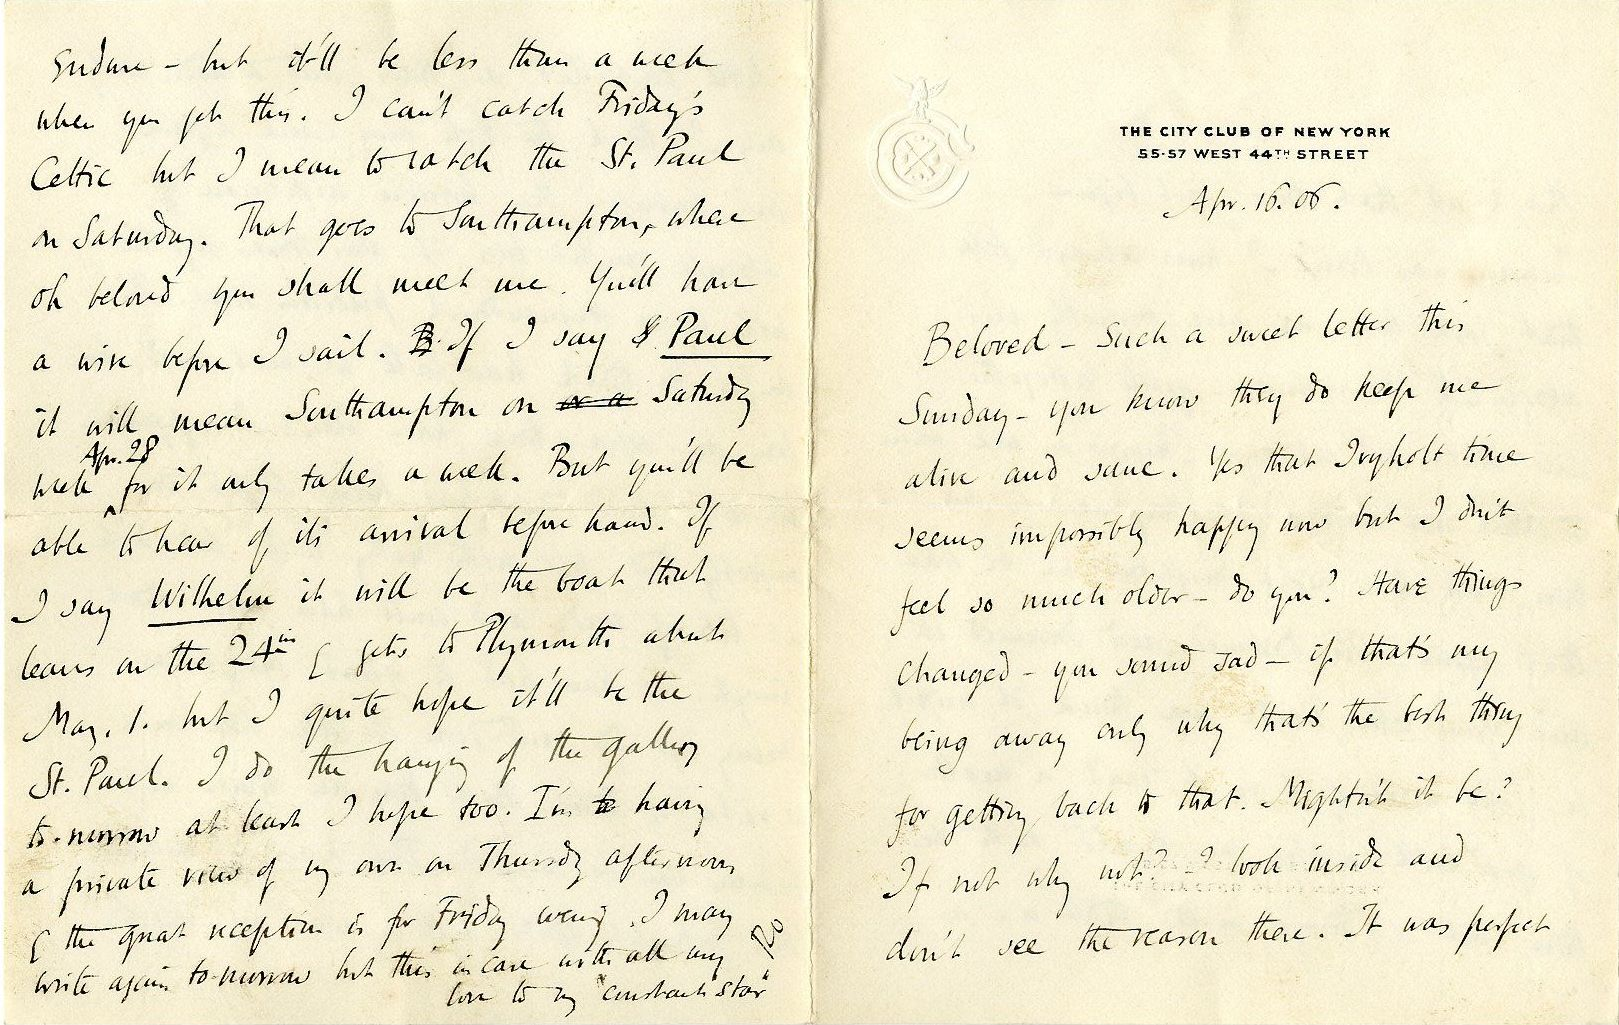 Letter from Roger Fry to Helen Coombe, 16 April 1906, discussing their early days at Ivy Holt. [REF/3/58/4]